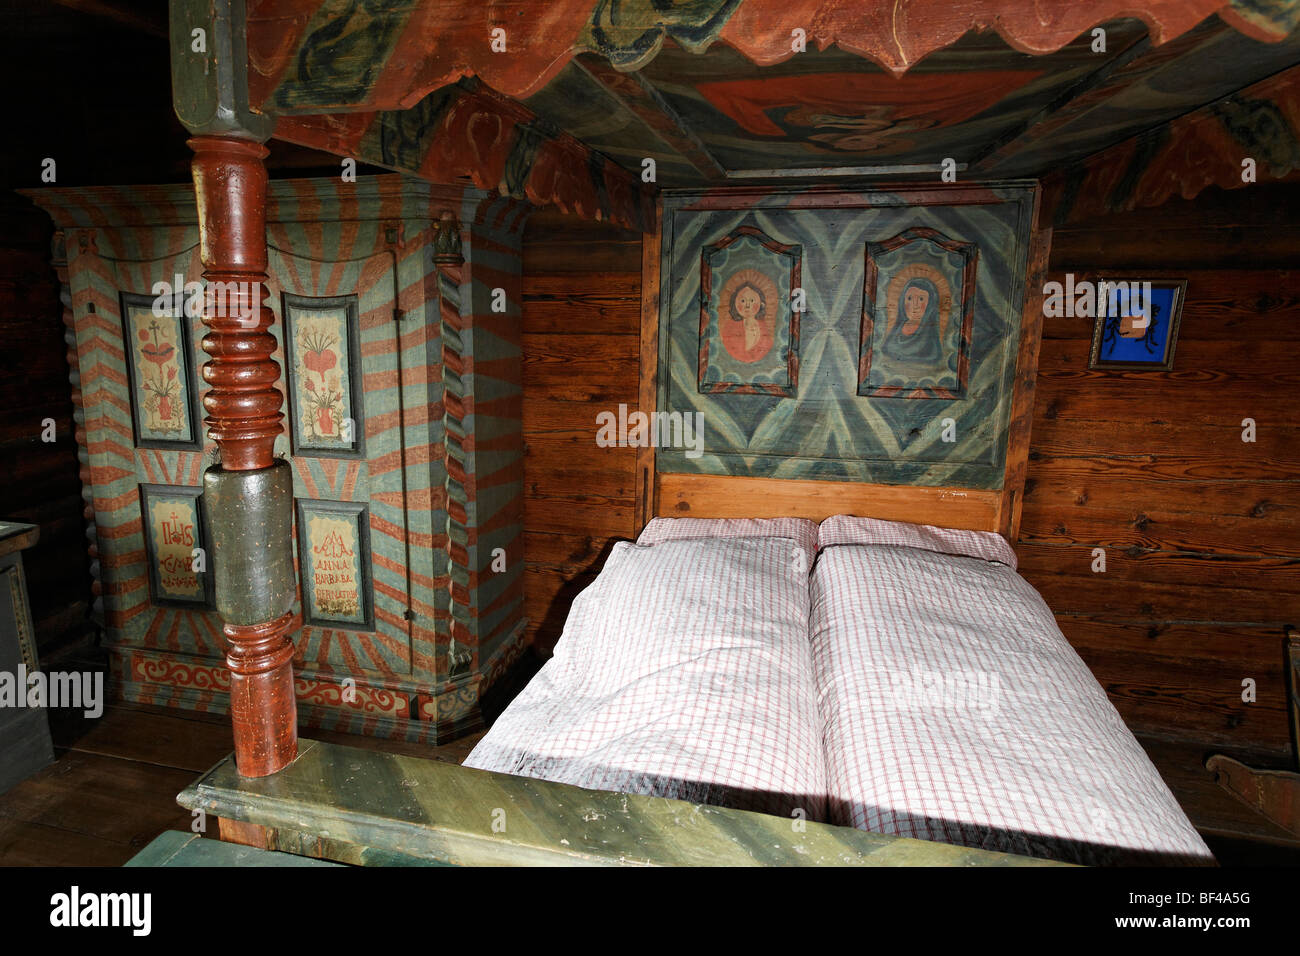 Sleeping chamber with a painted four-poster-bed from 1850, Fuessinger House from Siebratsreute, Wolfegg Farmhouse - Stock Image